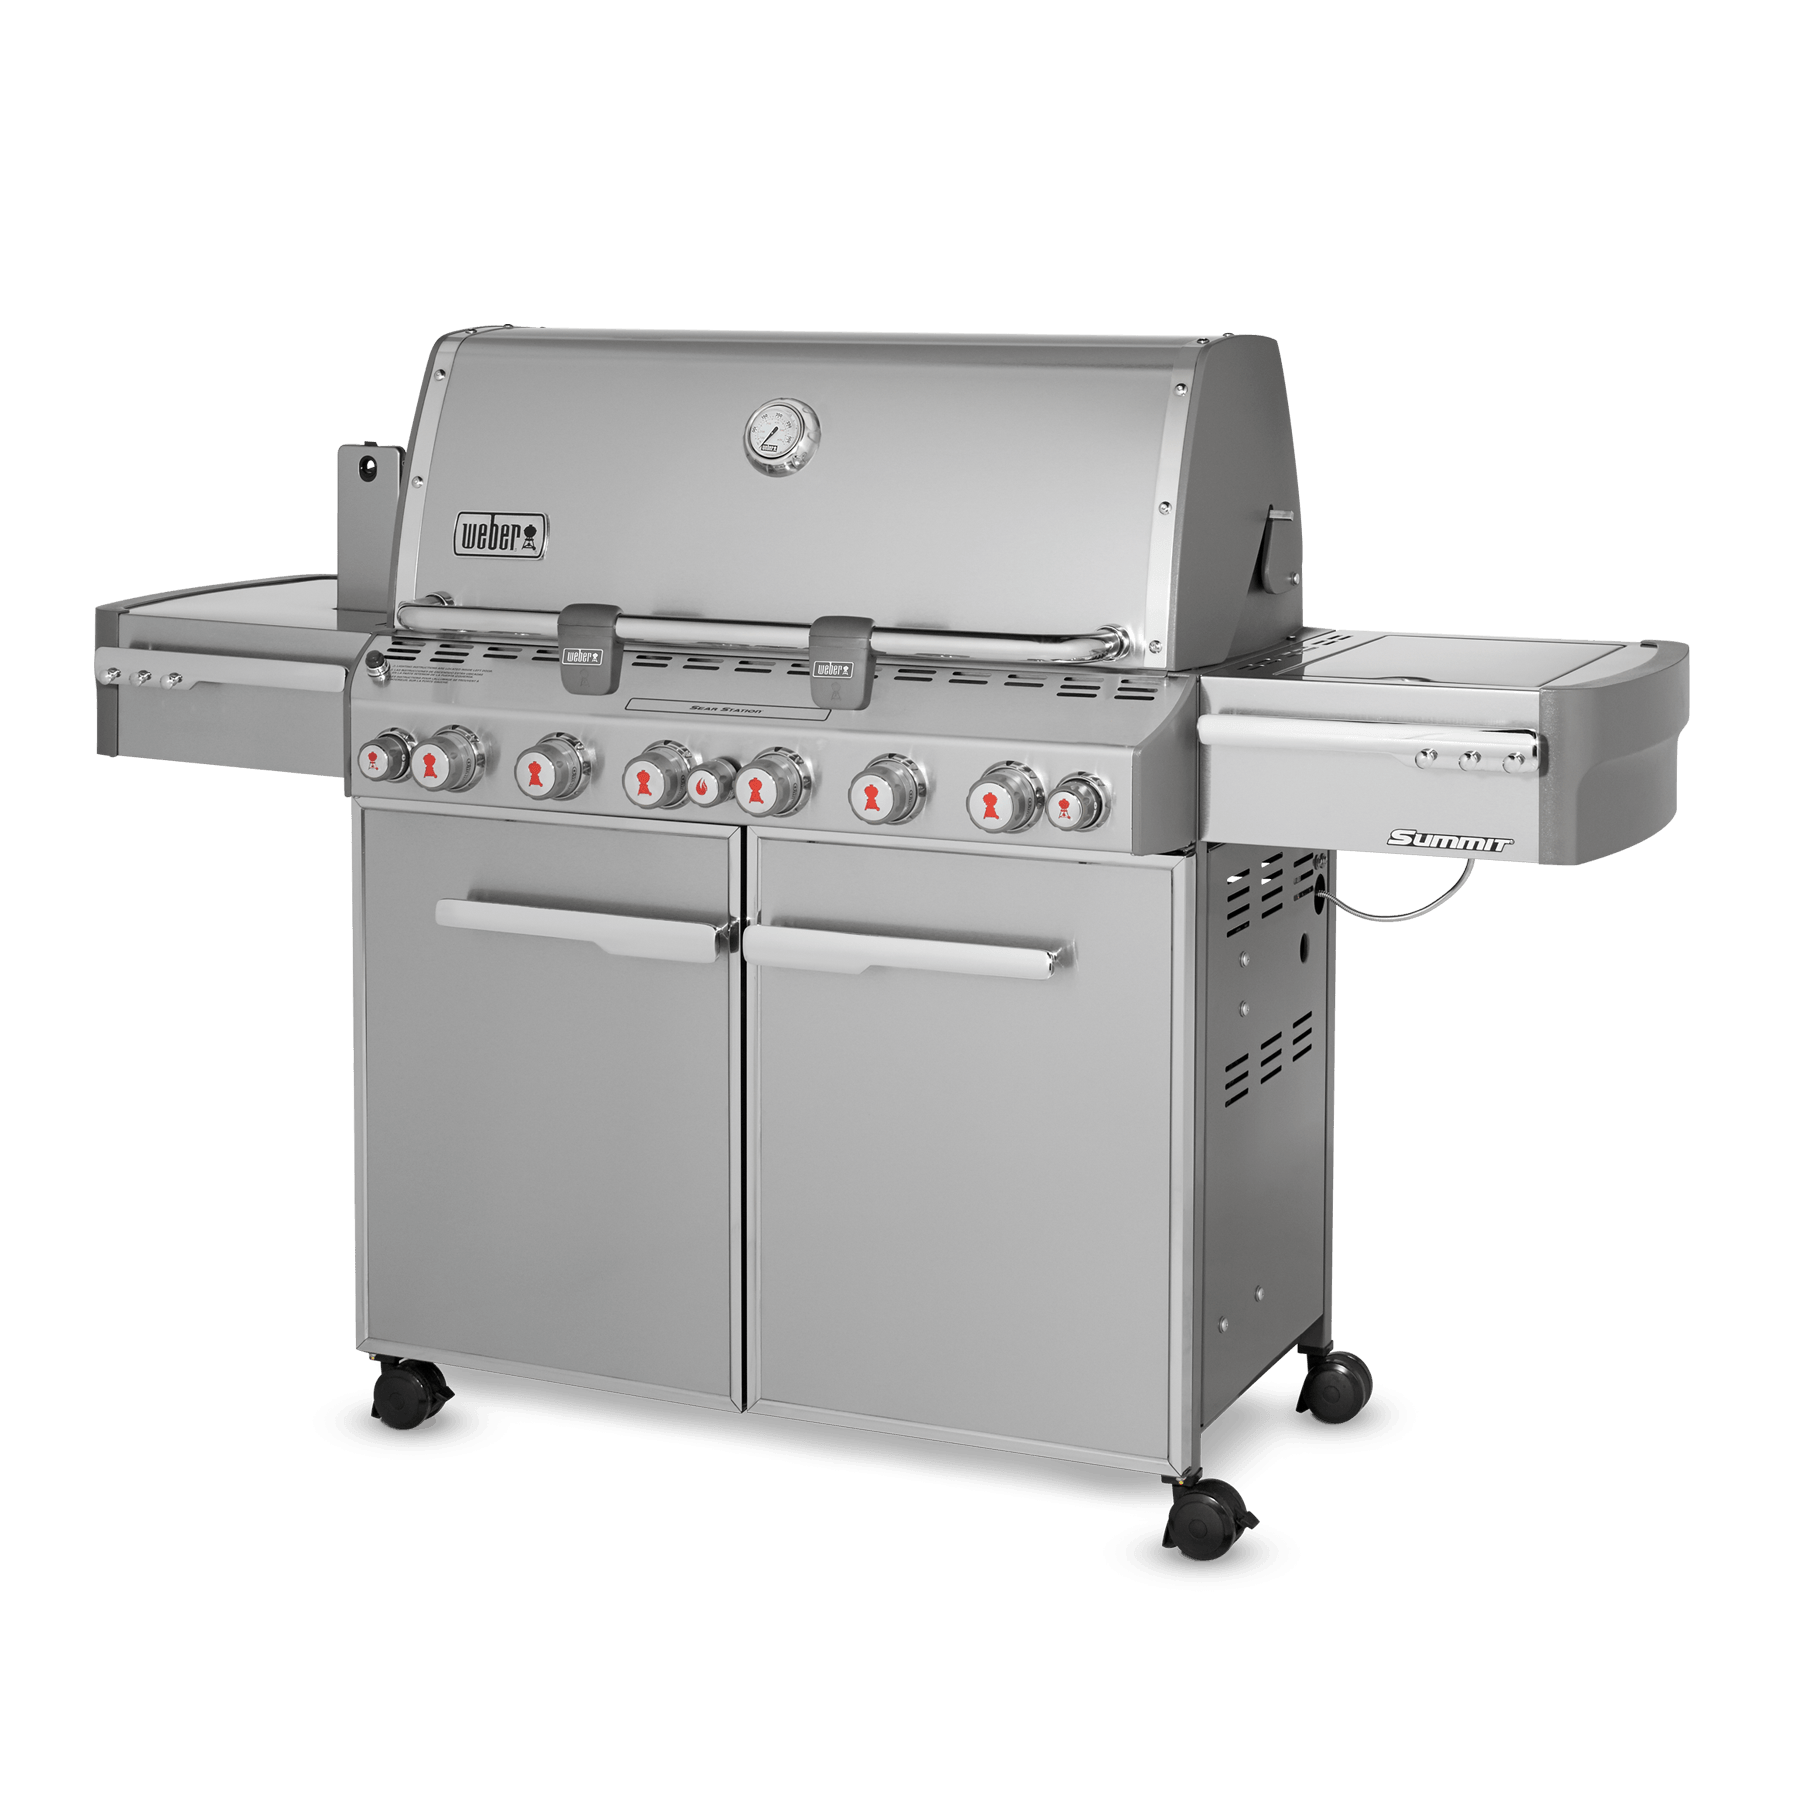 Parrilla a gas Summit® S-670 GBS